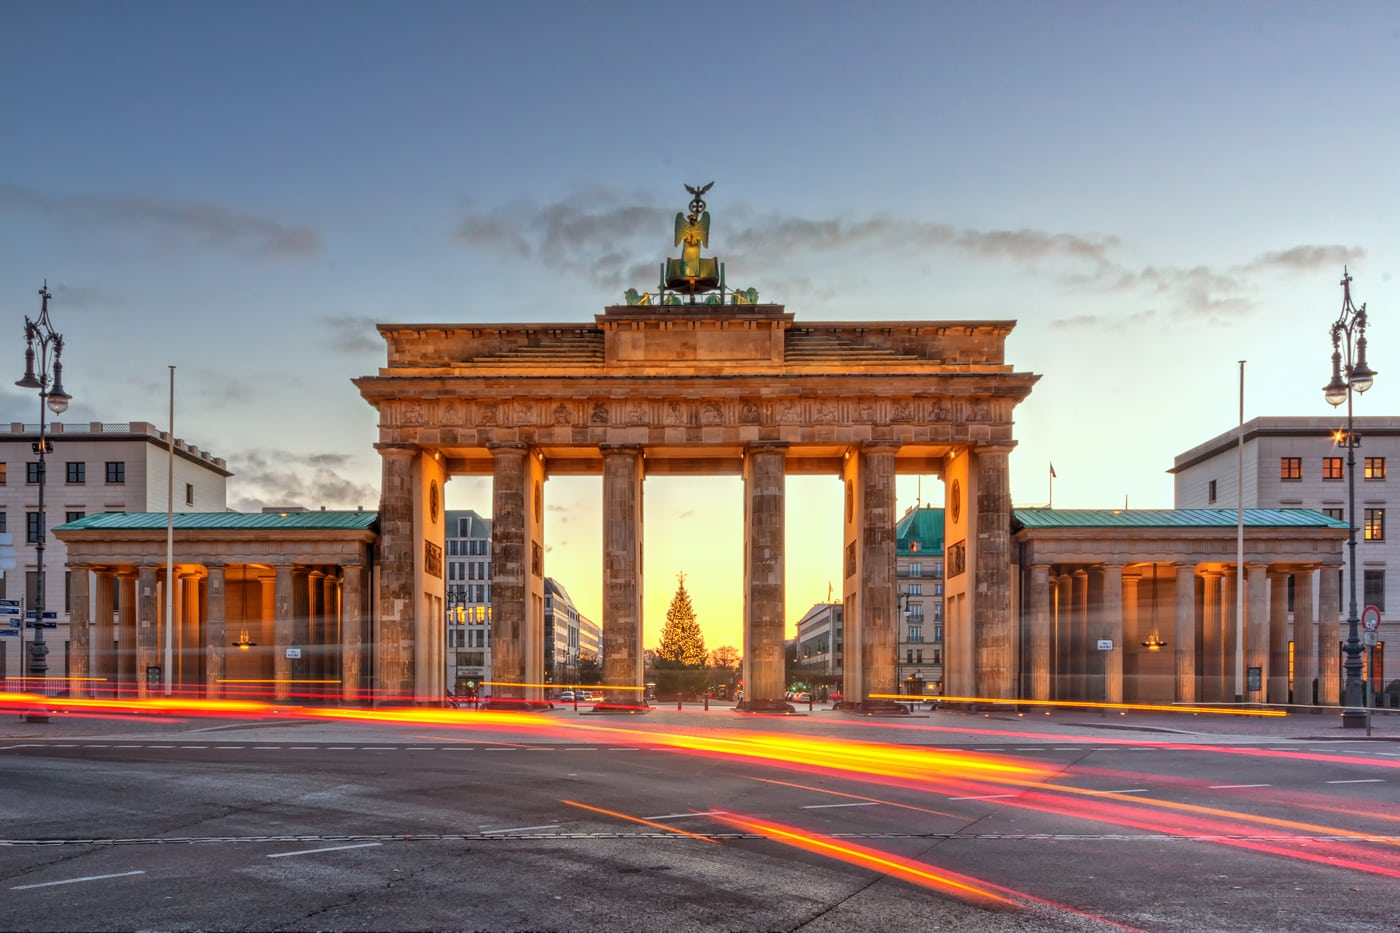 Brandenburg Gate in Berlin. HDR Photo from the West side of the illuminated sight at sunrise with light trails of the cars.